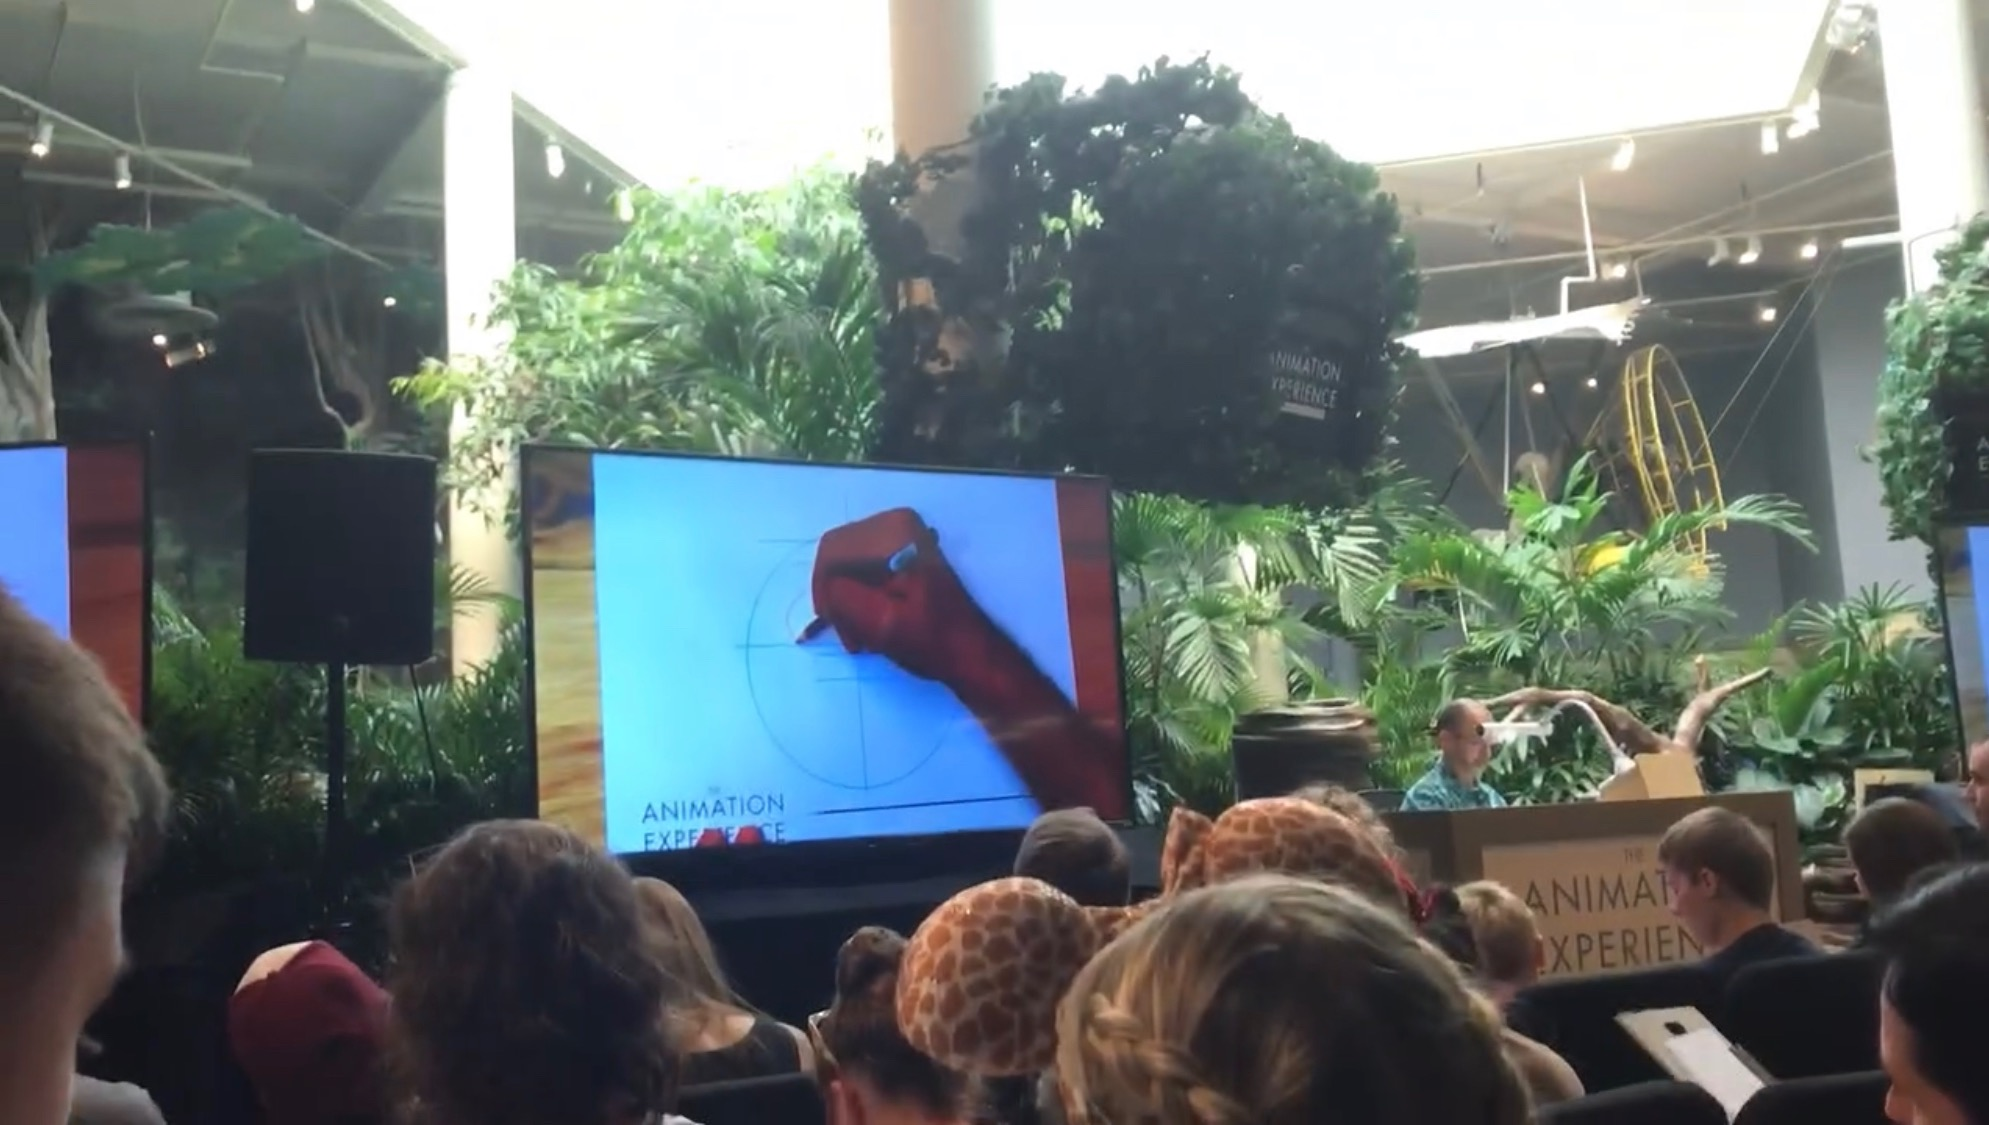 TV screen with guided drawing at Animation Experience.